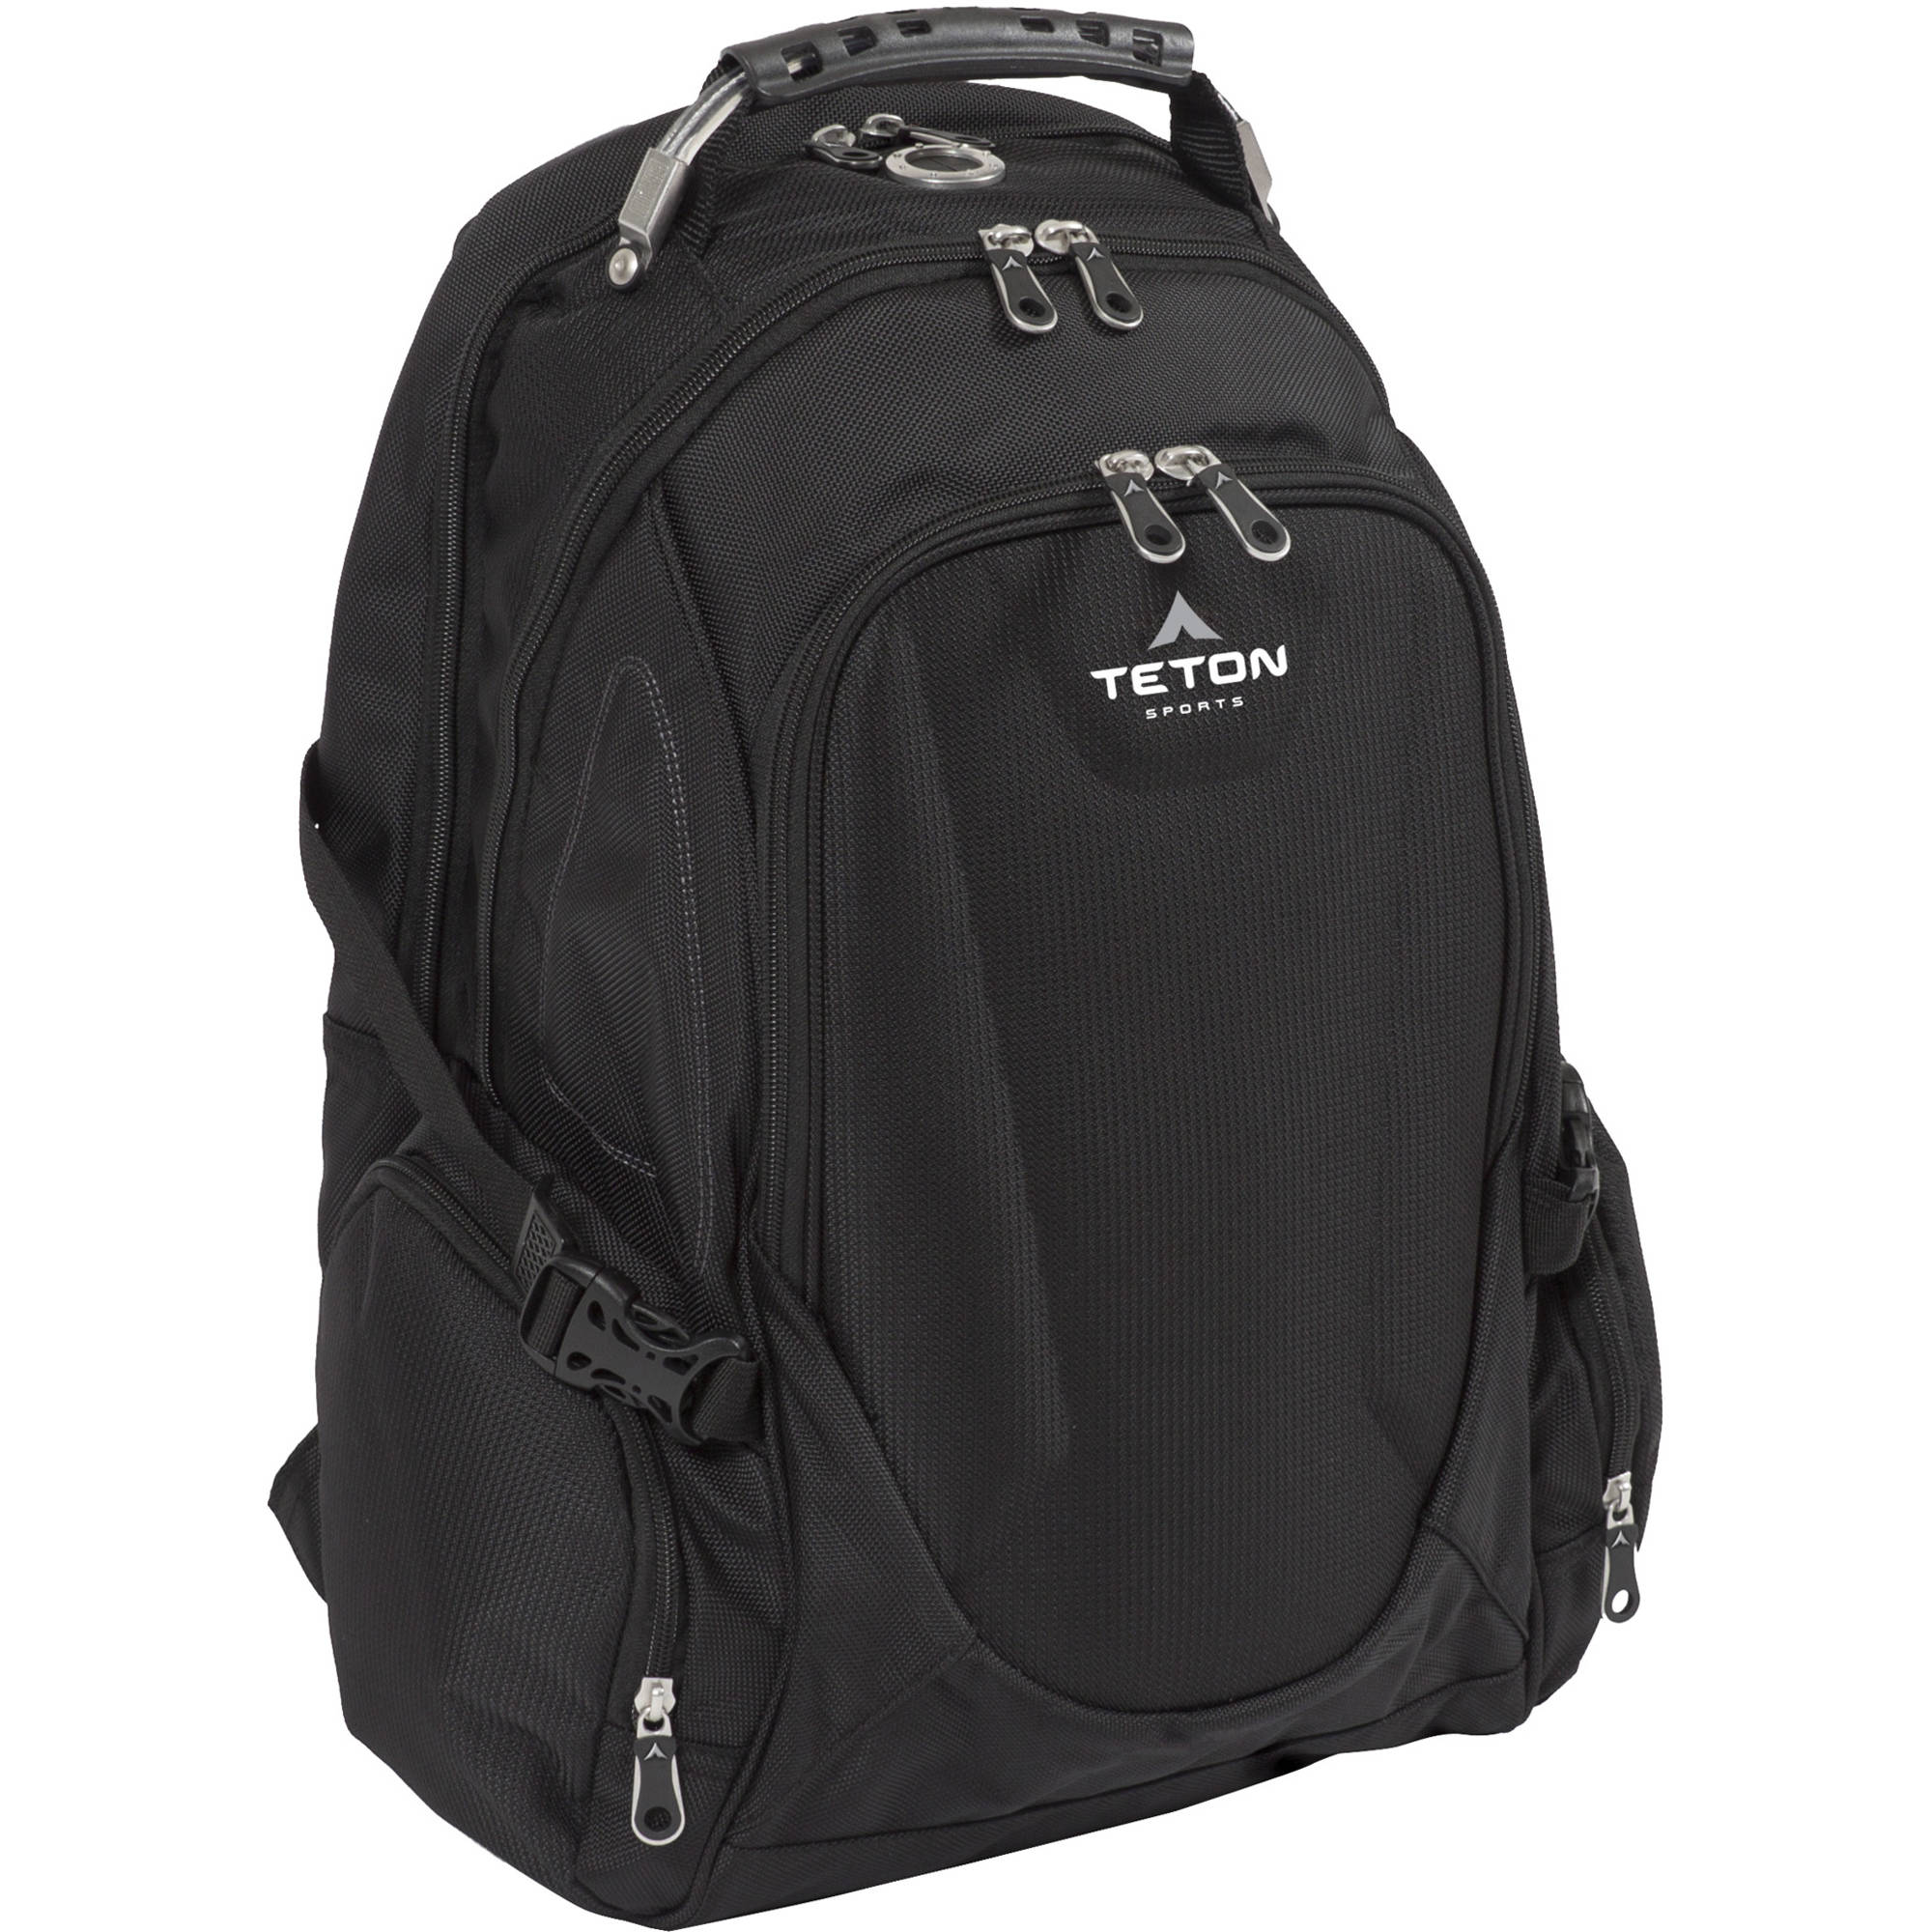 Load in Style: 10 Best Laptop Backpacks - NBC News |Business Tech Backpack